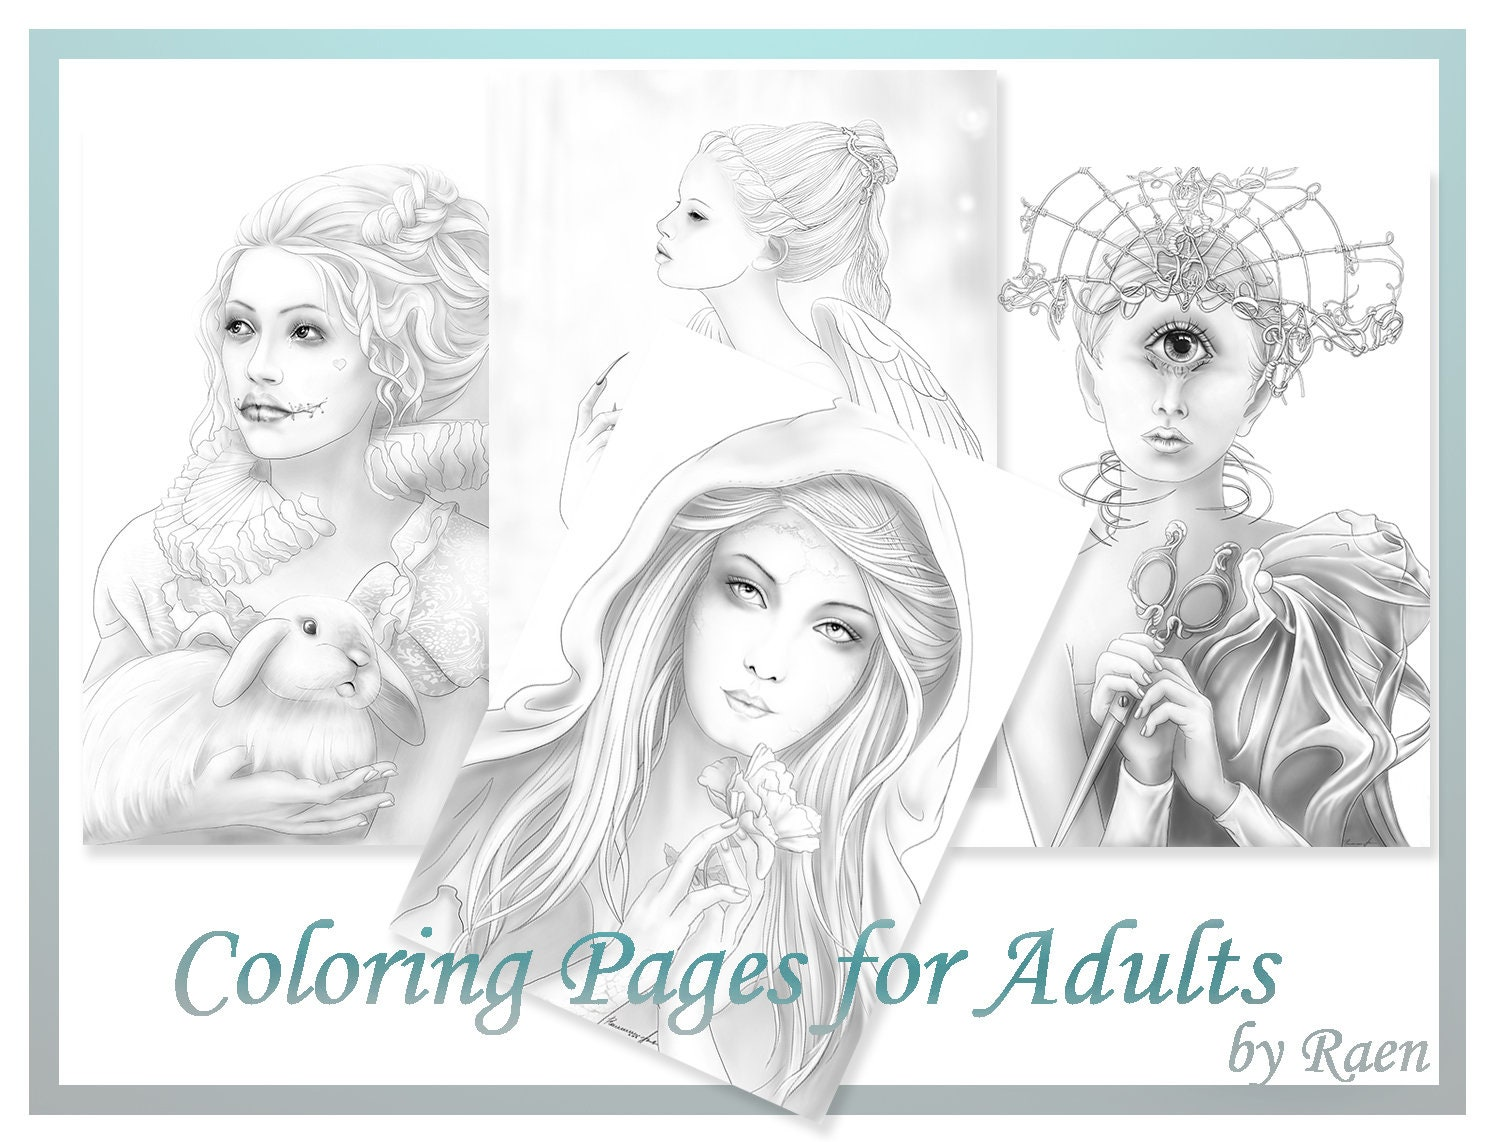 halloween coloring pages for adults digital stamps 4 coloring printable by raen coloring book angel evil clown cyclop witch pdf